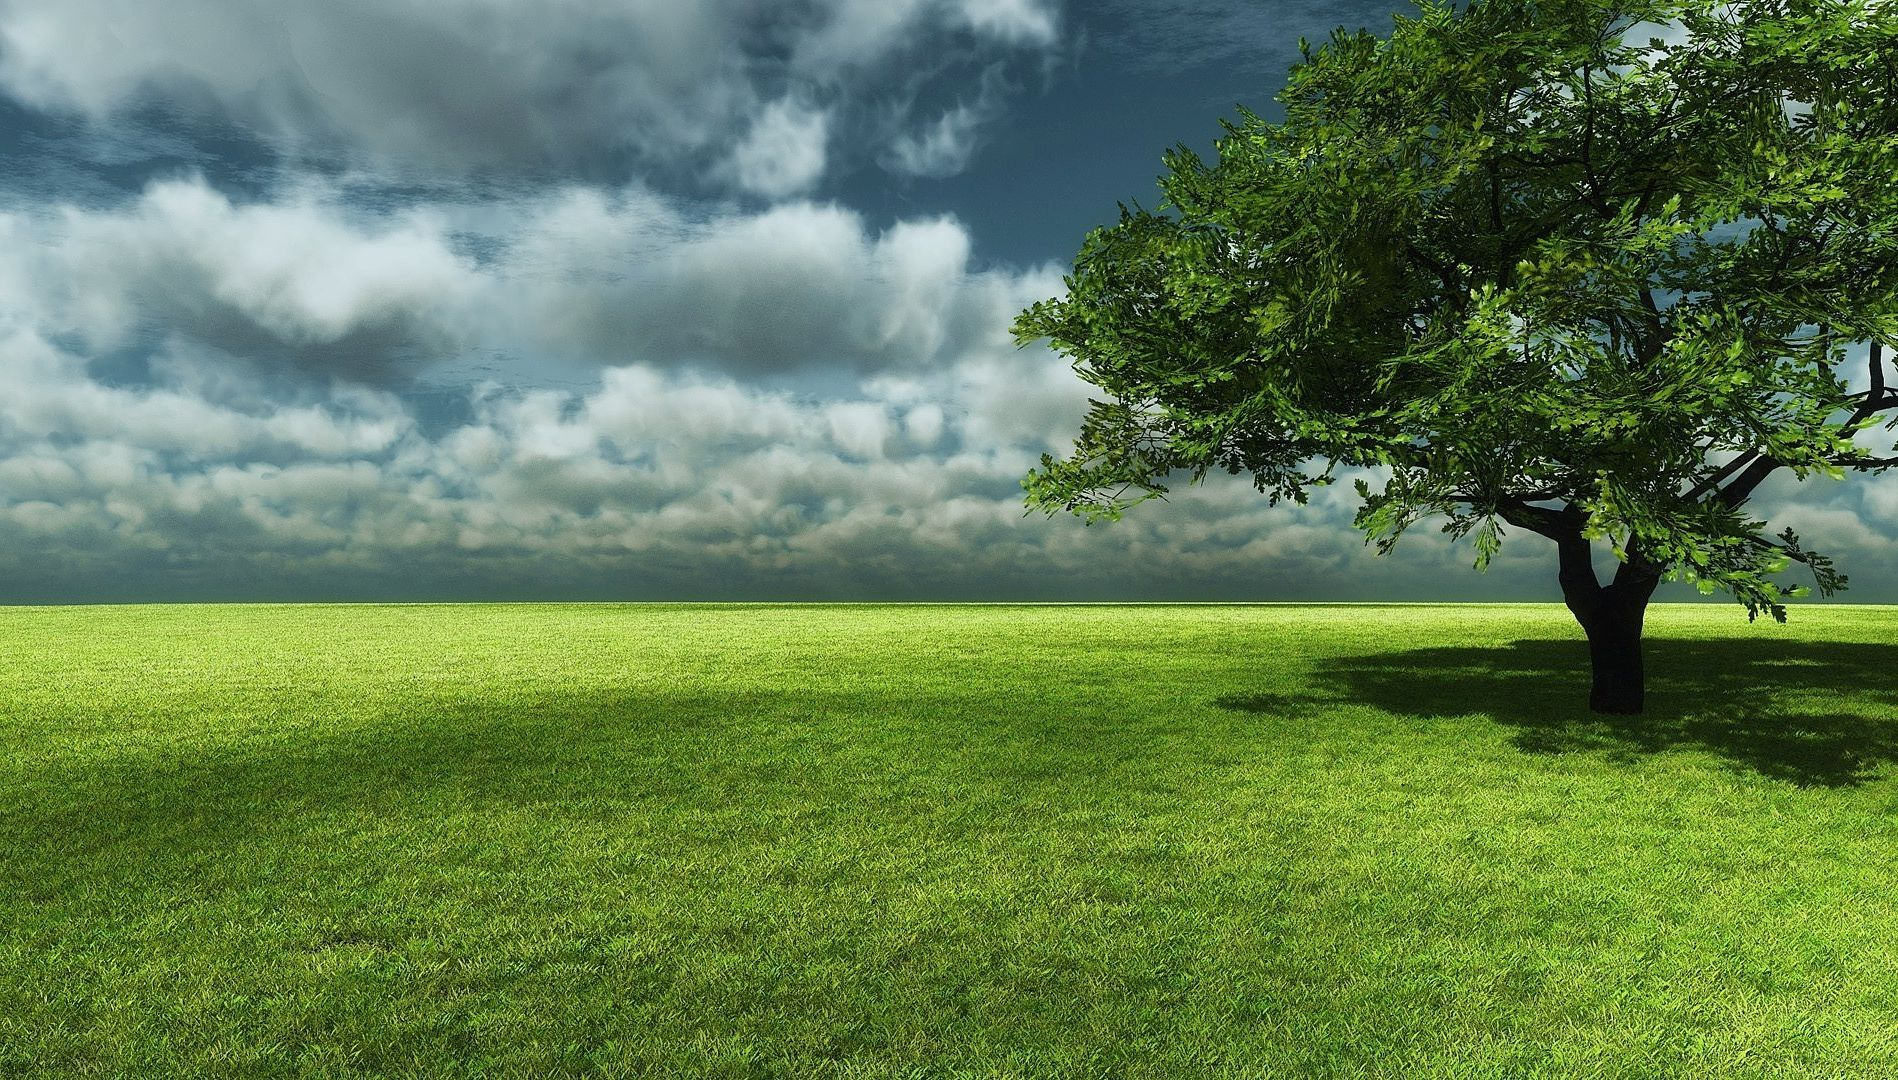 Big Tree with Grass Field Landscape wallpaper | WALLPAPER COLLECTION ...